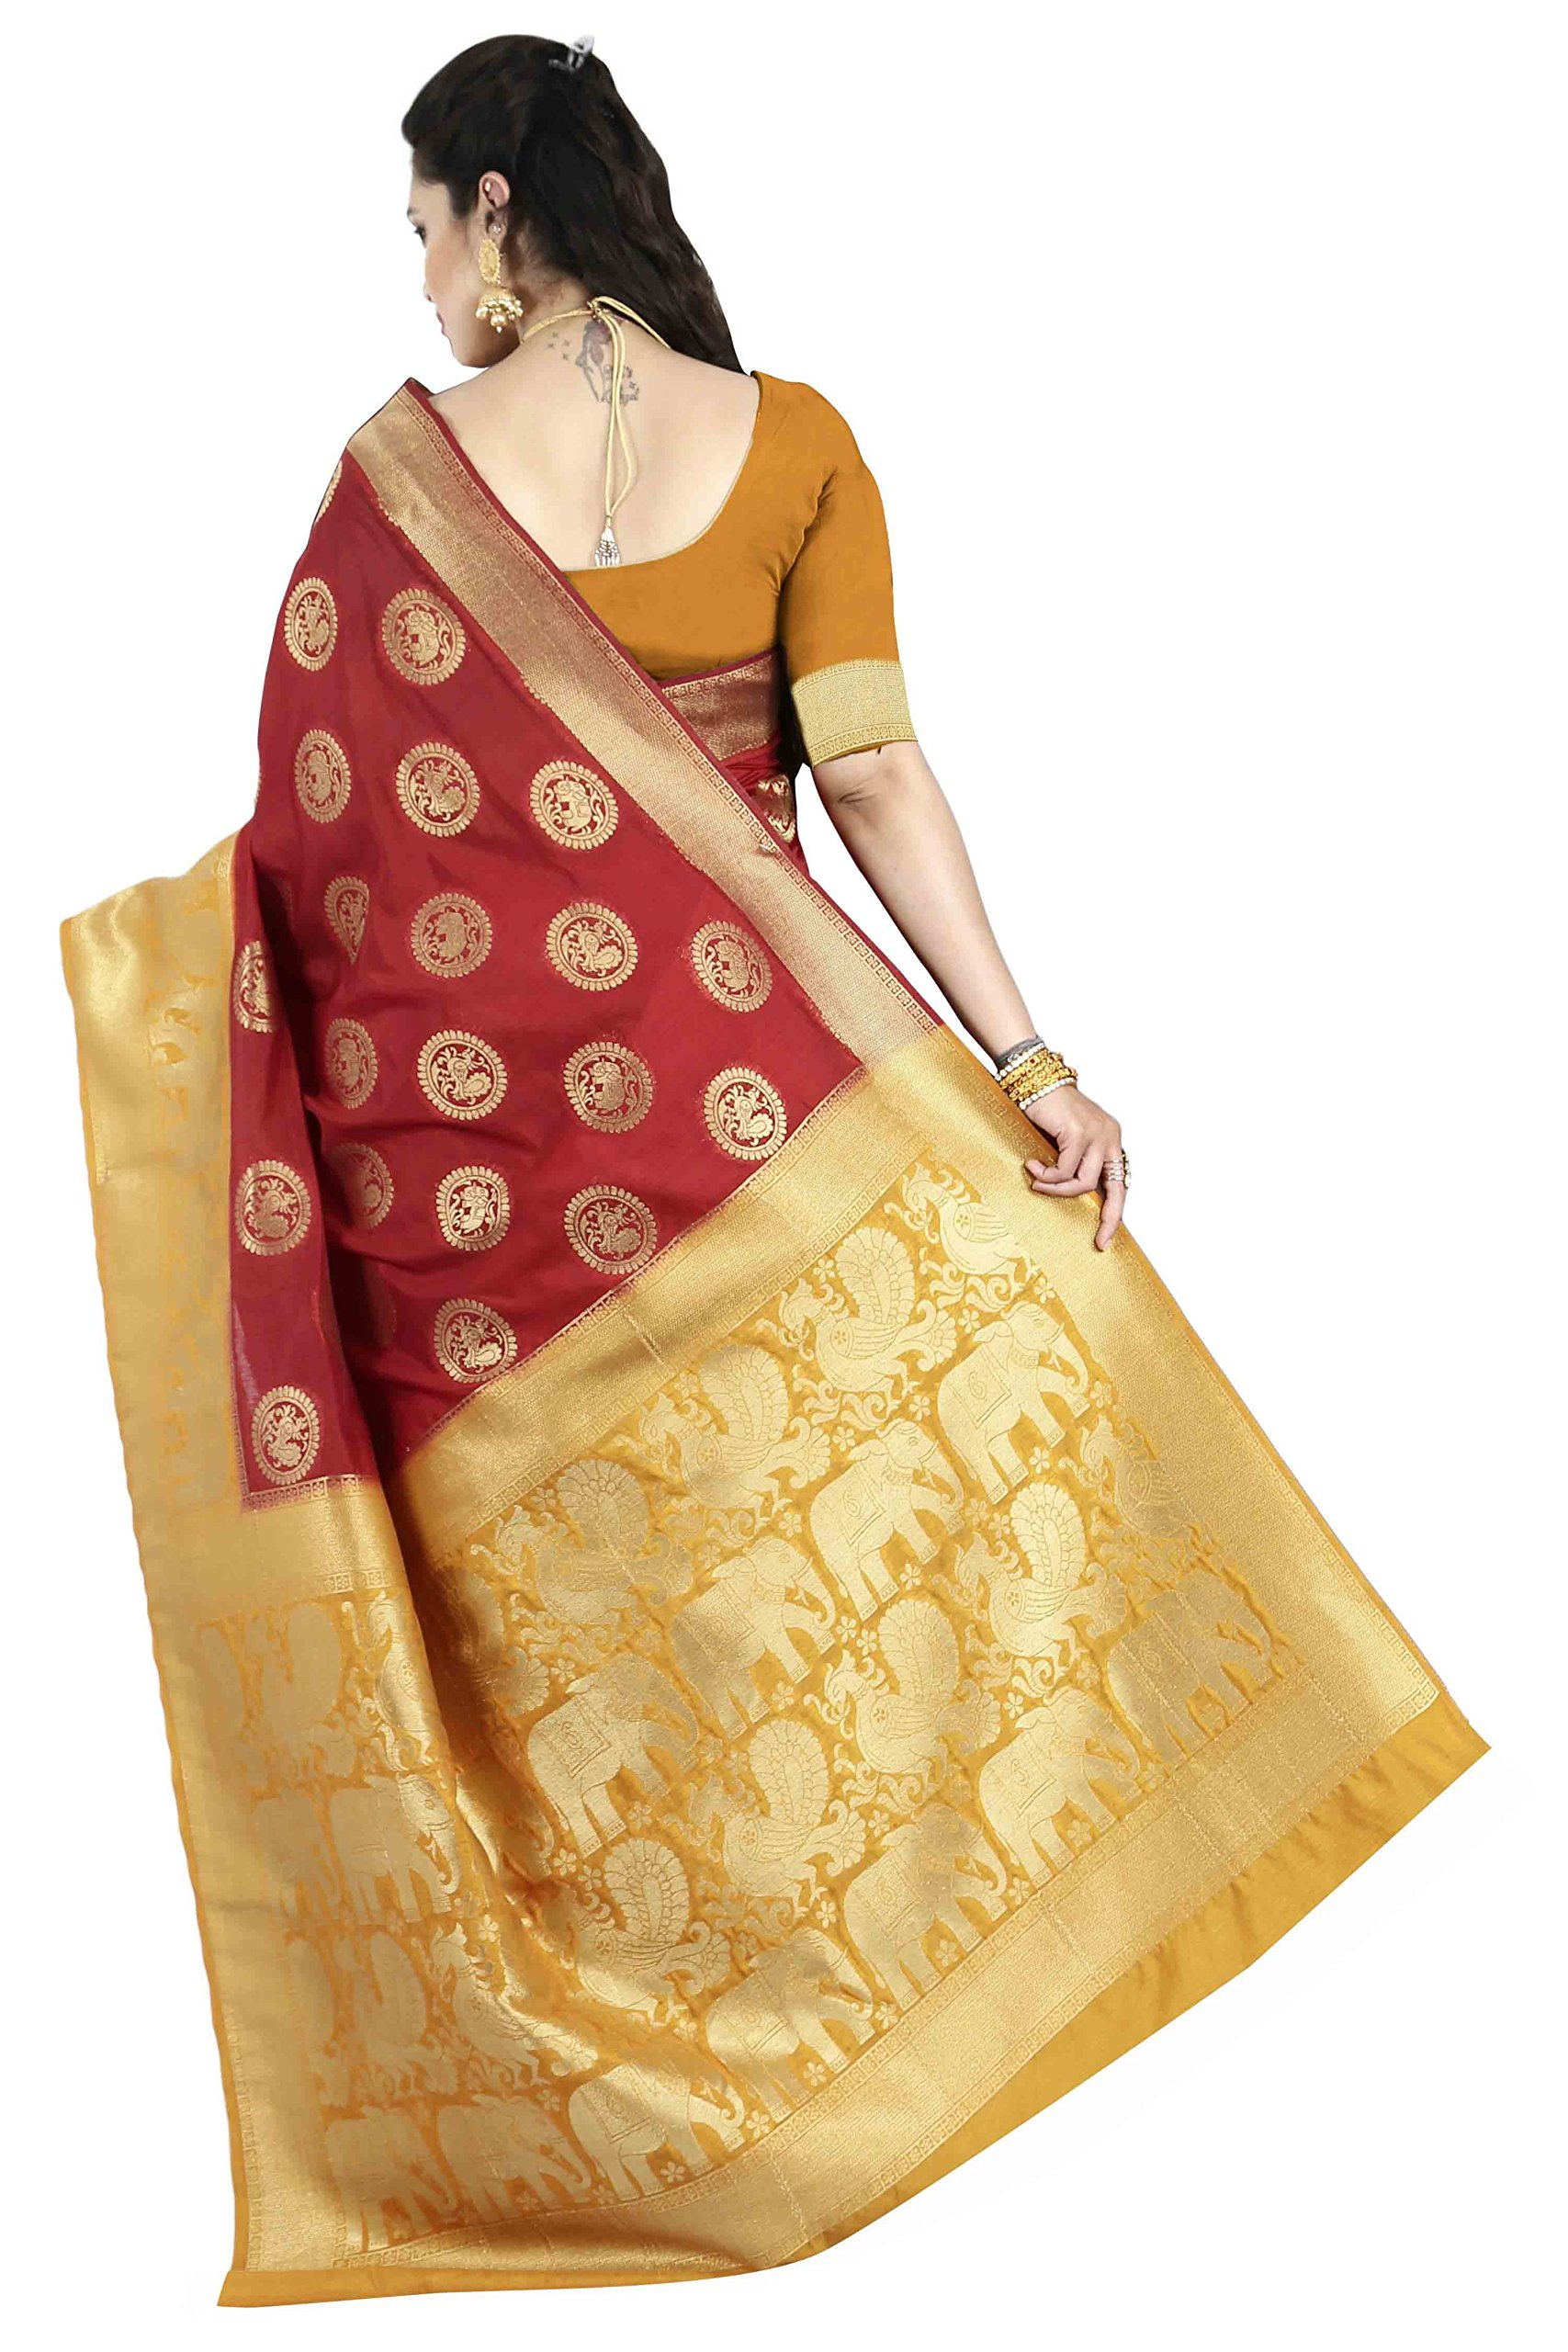 5993aad0b5 arars Women's Kanchipuram silk saree wedding collections (220 RP ...